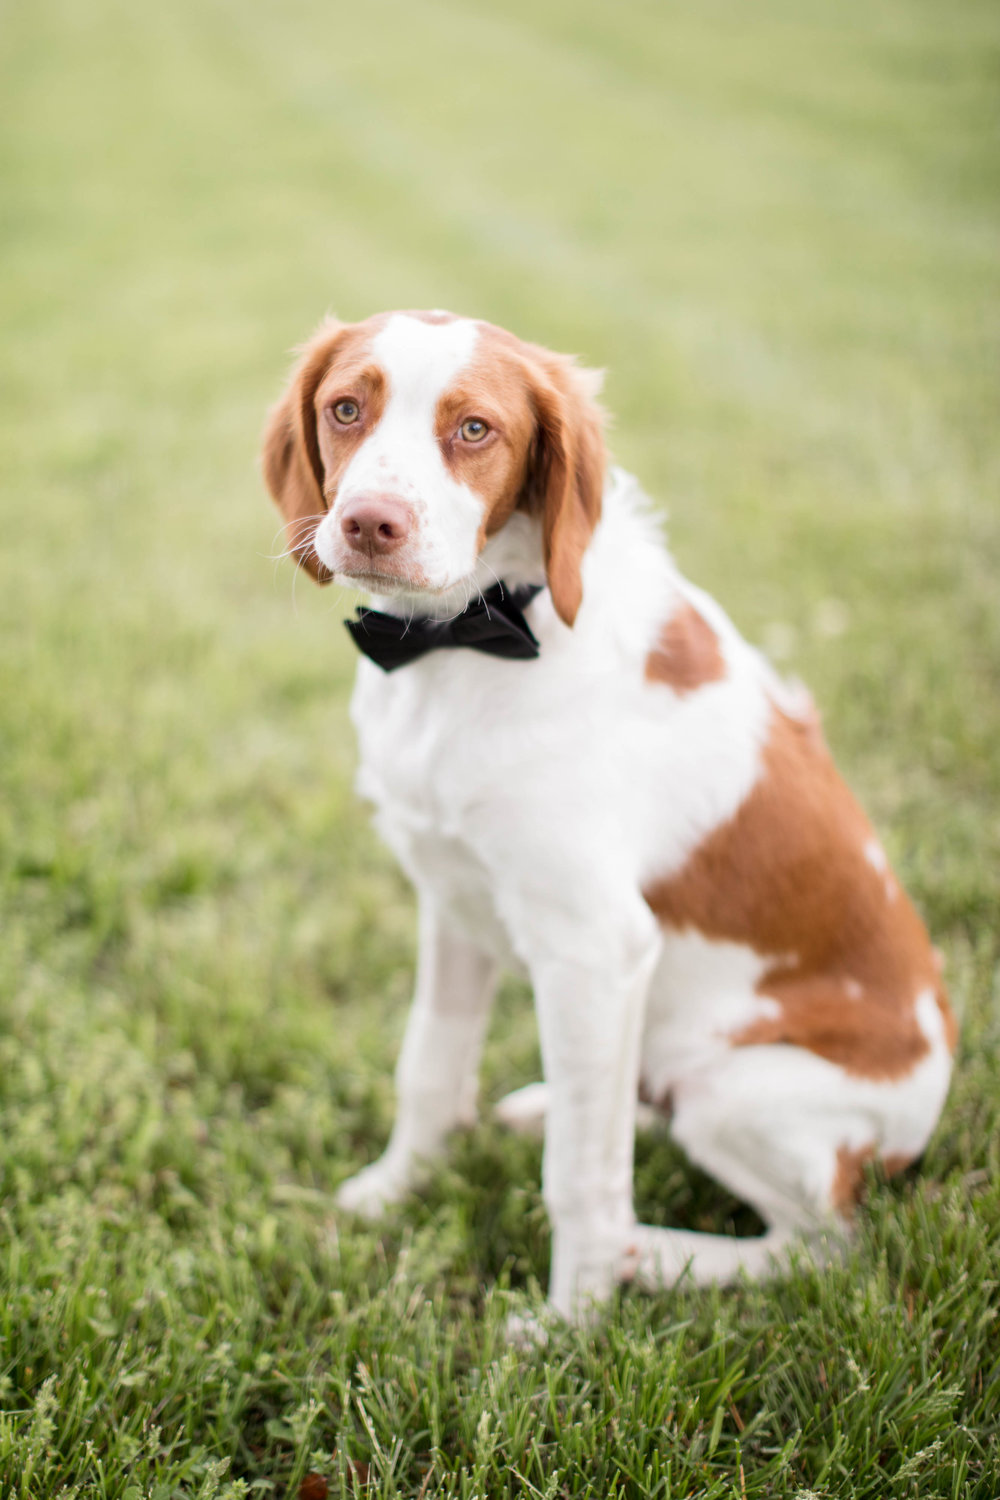 Wedding photography dog with bowtie